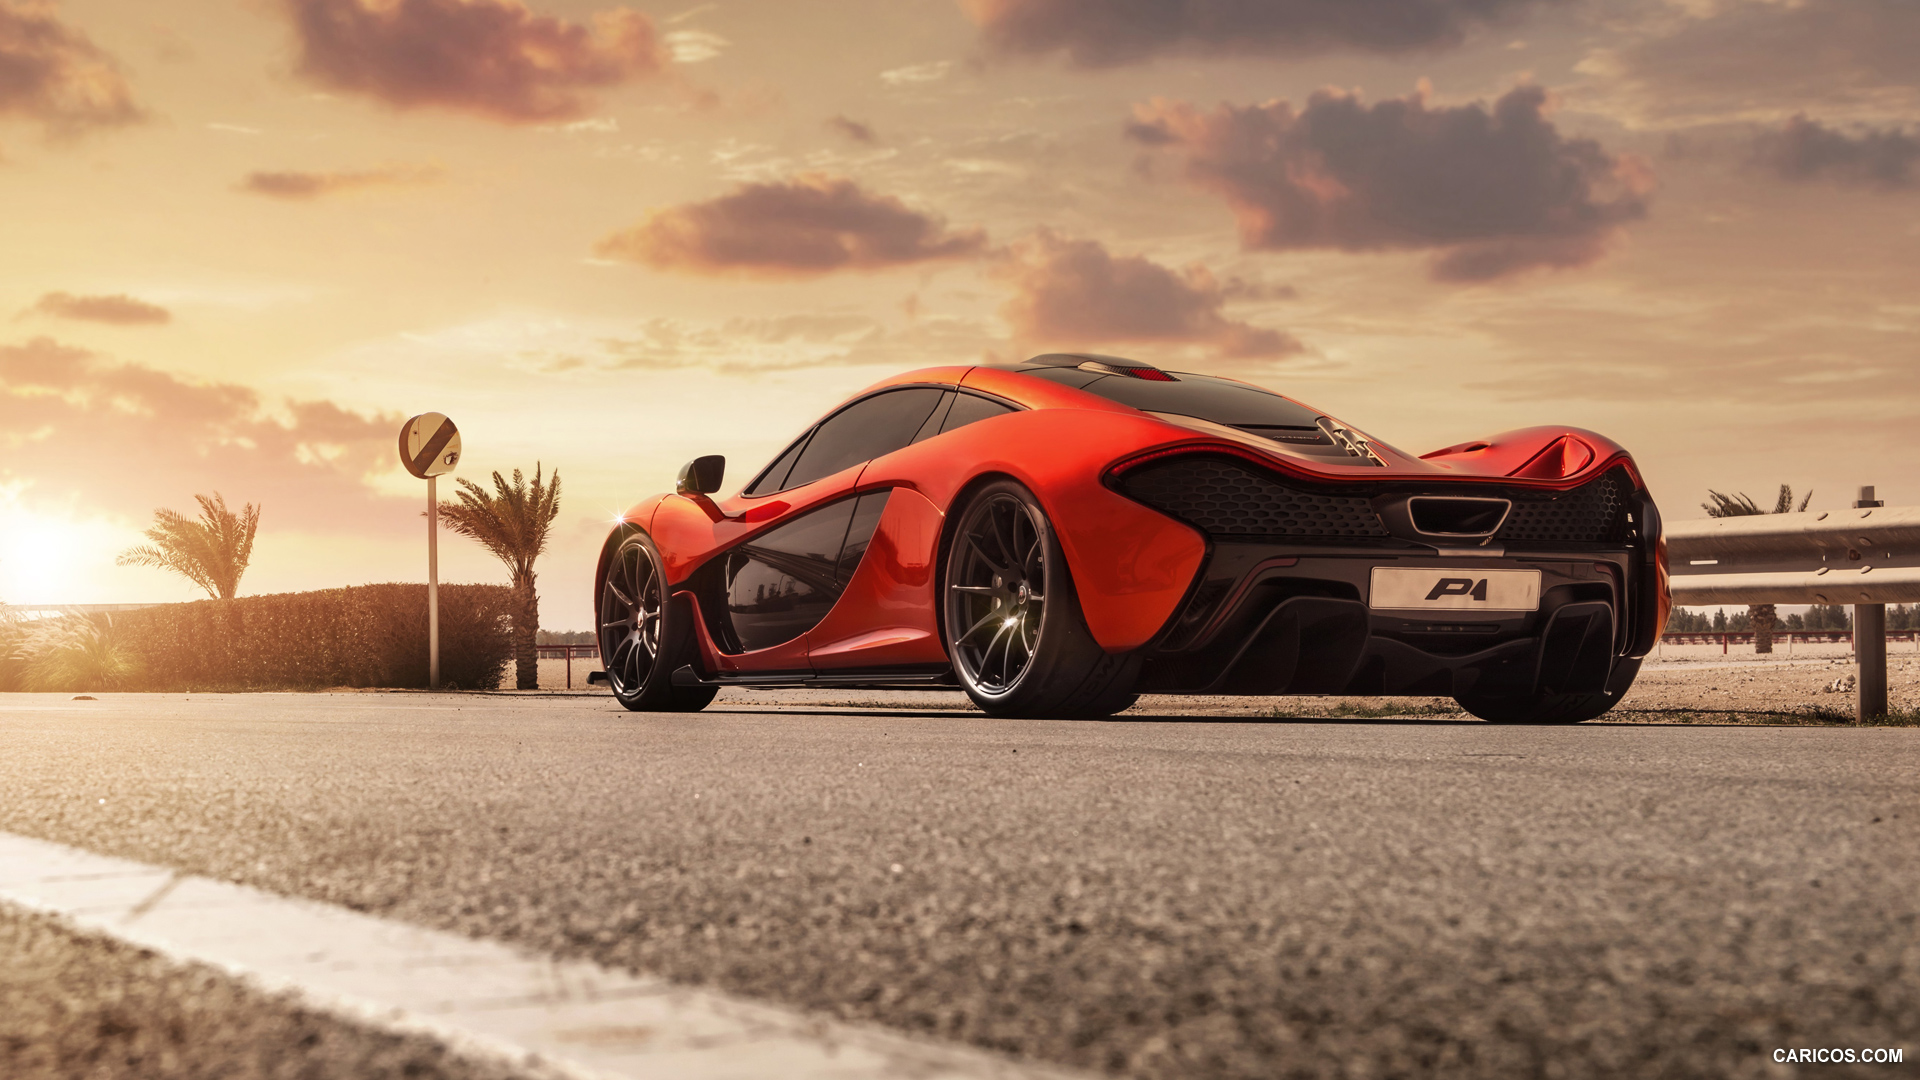 2014 McLaren P1 - Rear | HD Wallpaper #11